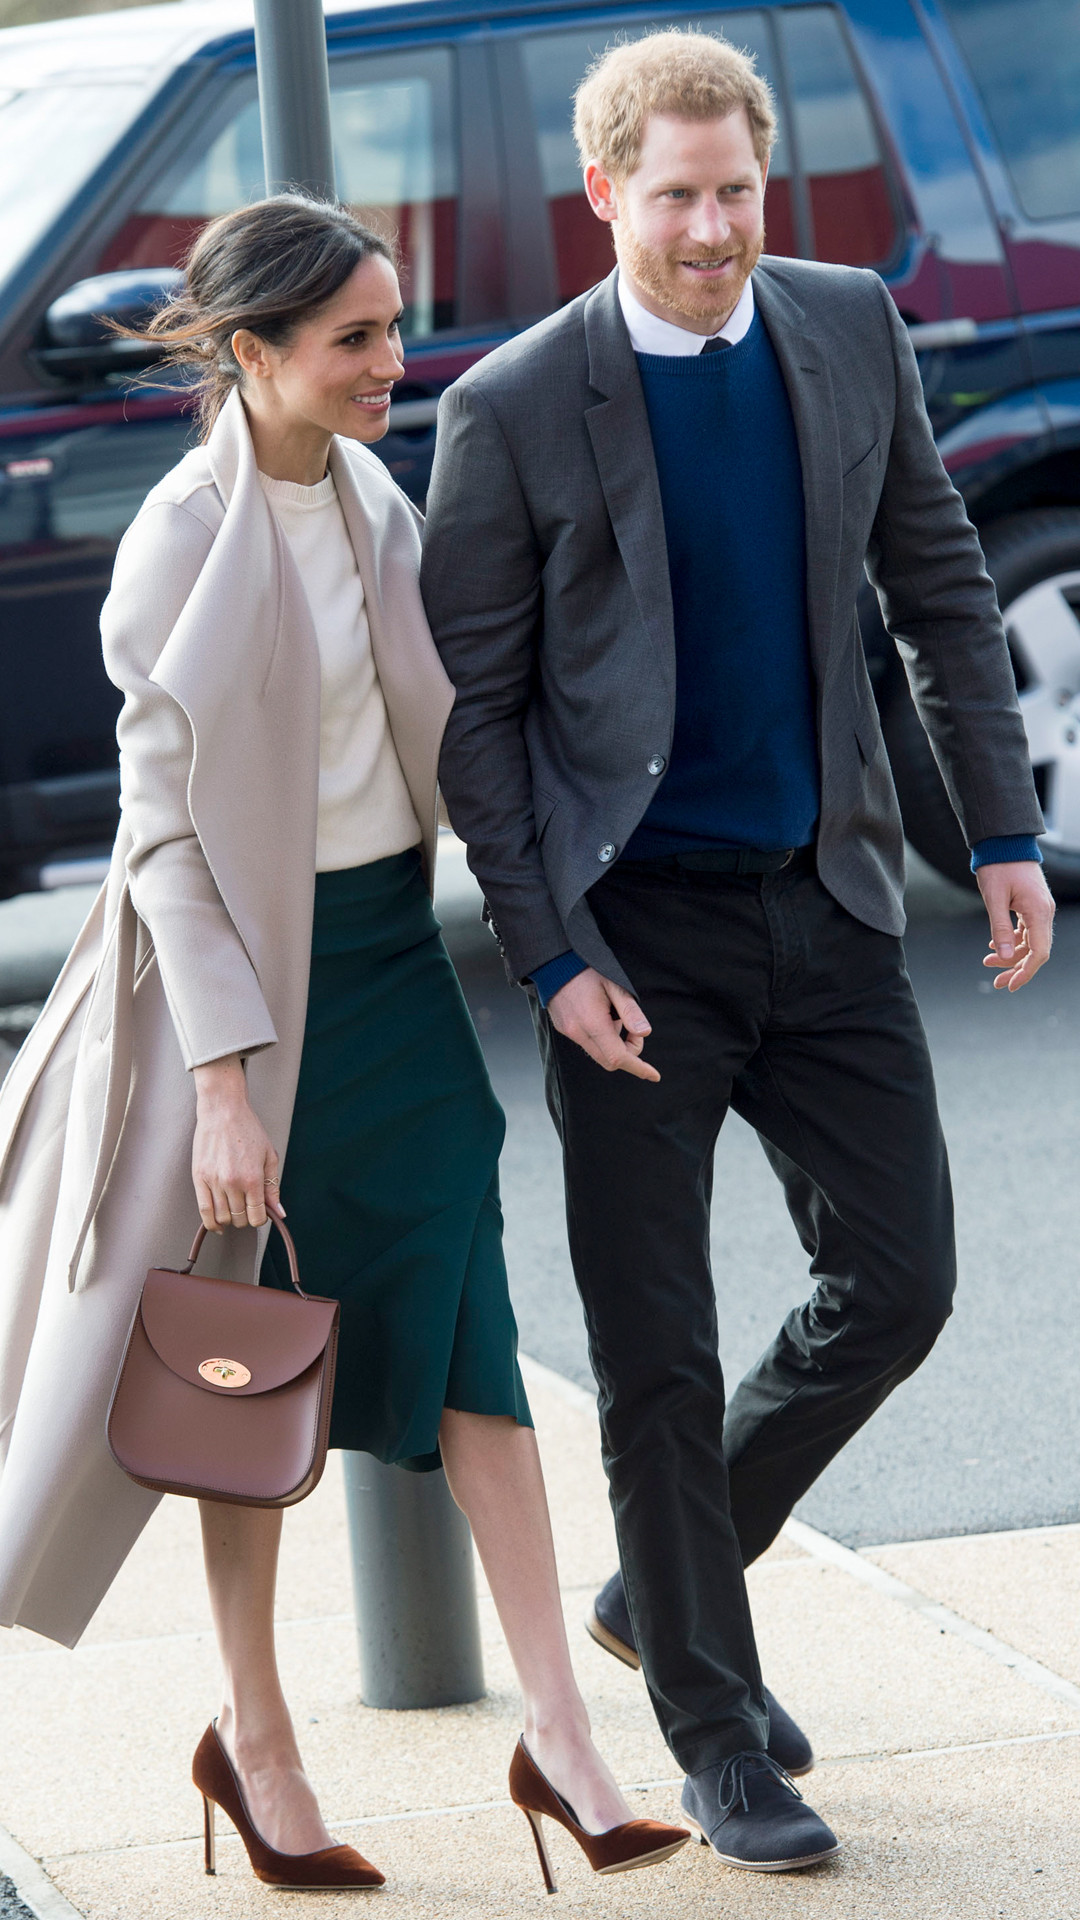 Meghan Markle S Belfast Look Why Her Skirt And Messy Bun Are So